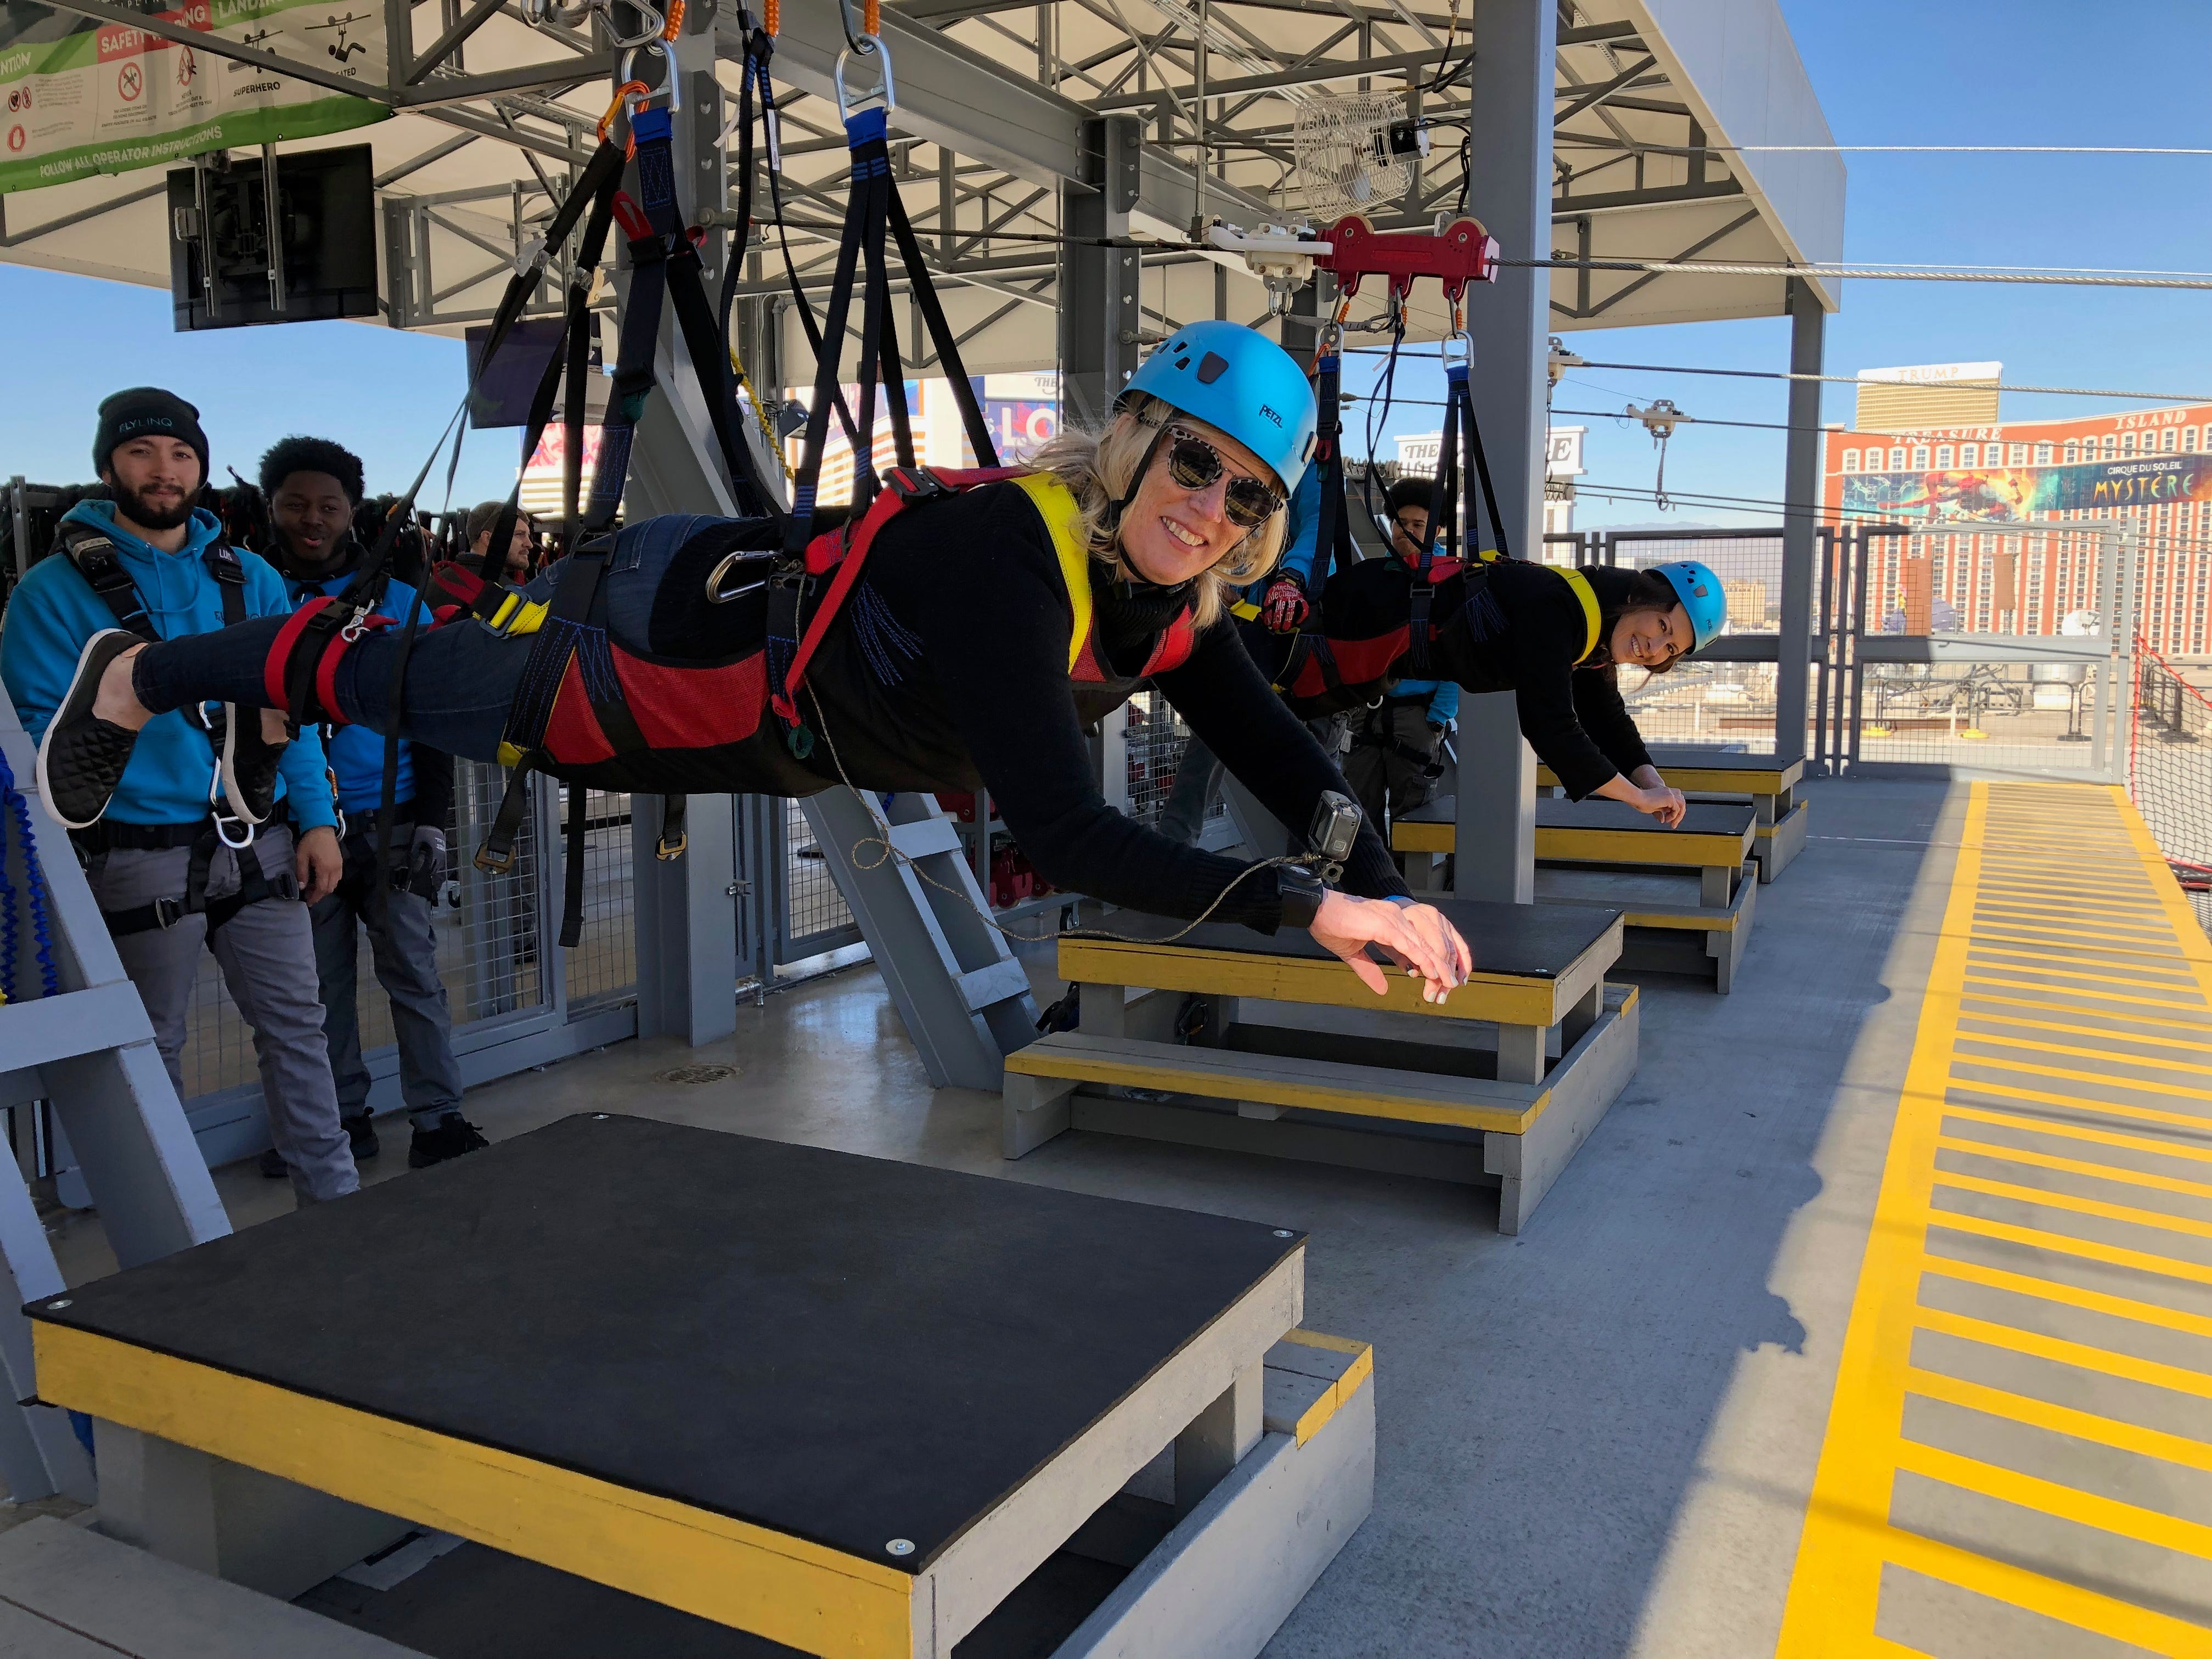 USA TODAY travel reporter Dawn Gilbertson preparing for takeoff, superhero style, at the new Fly Linq zipline on the Las Vegas Strip.